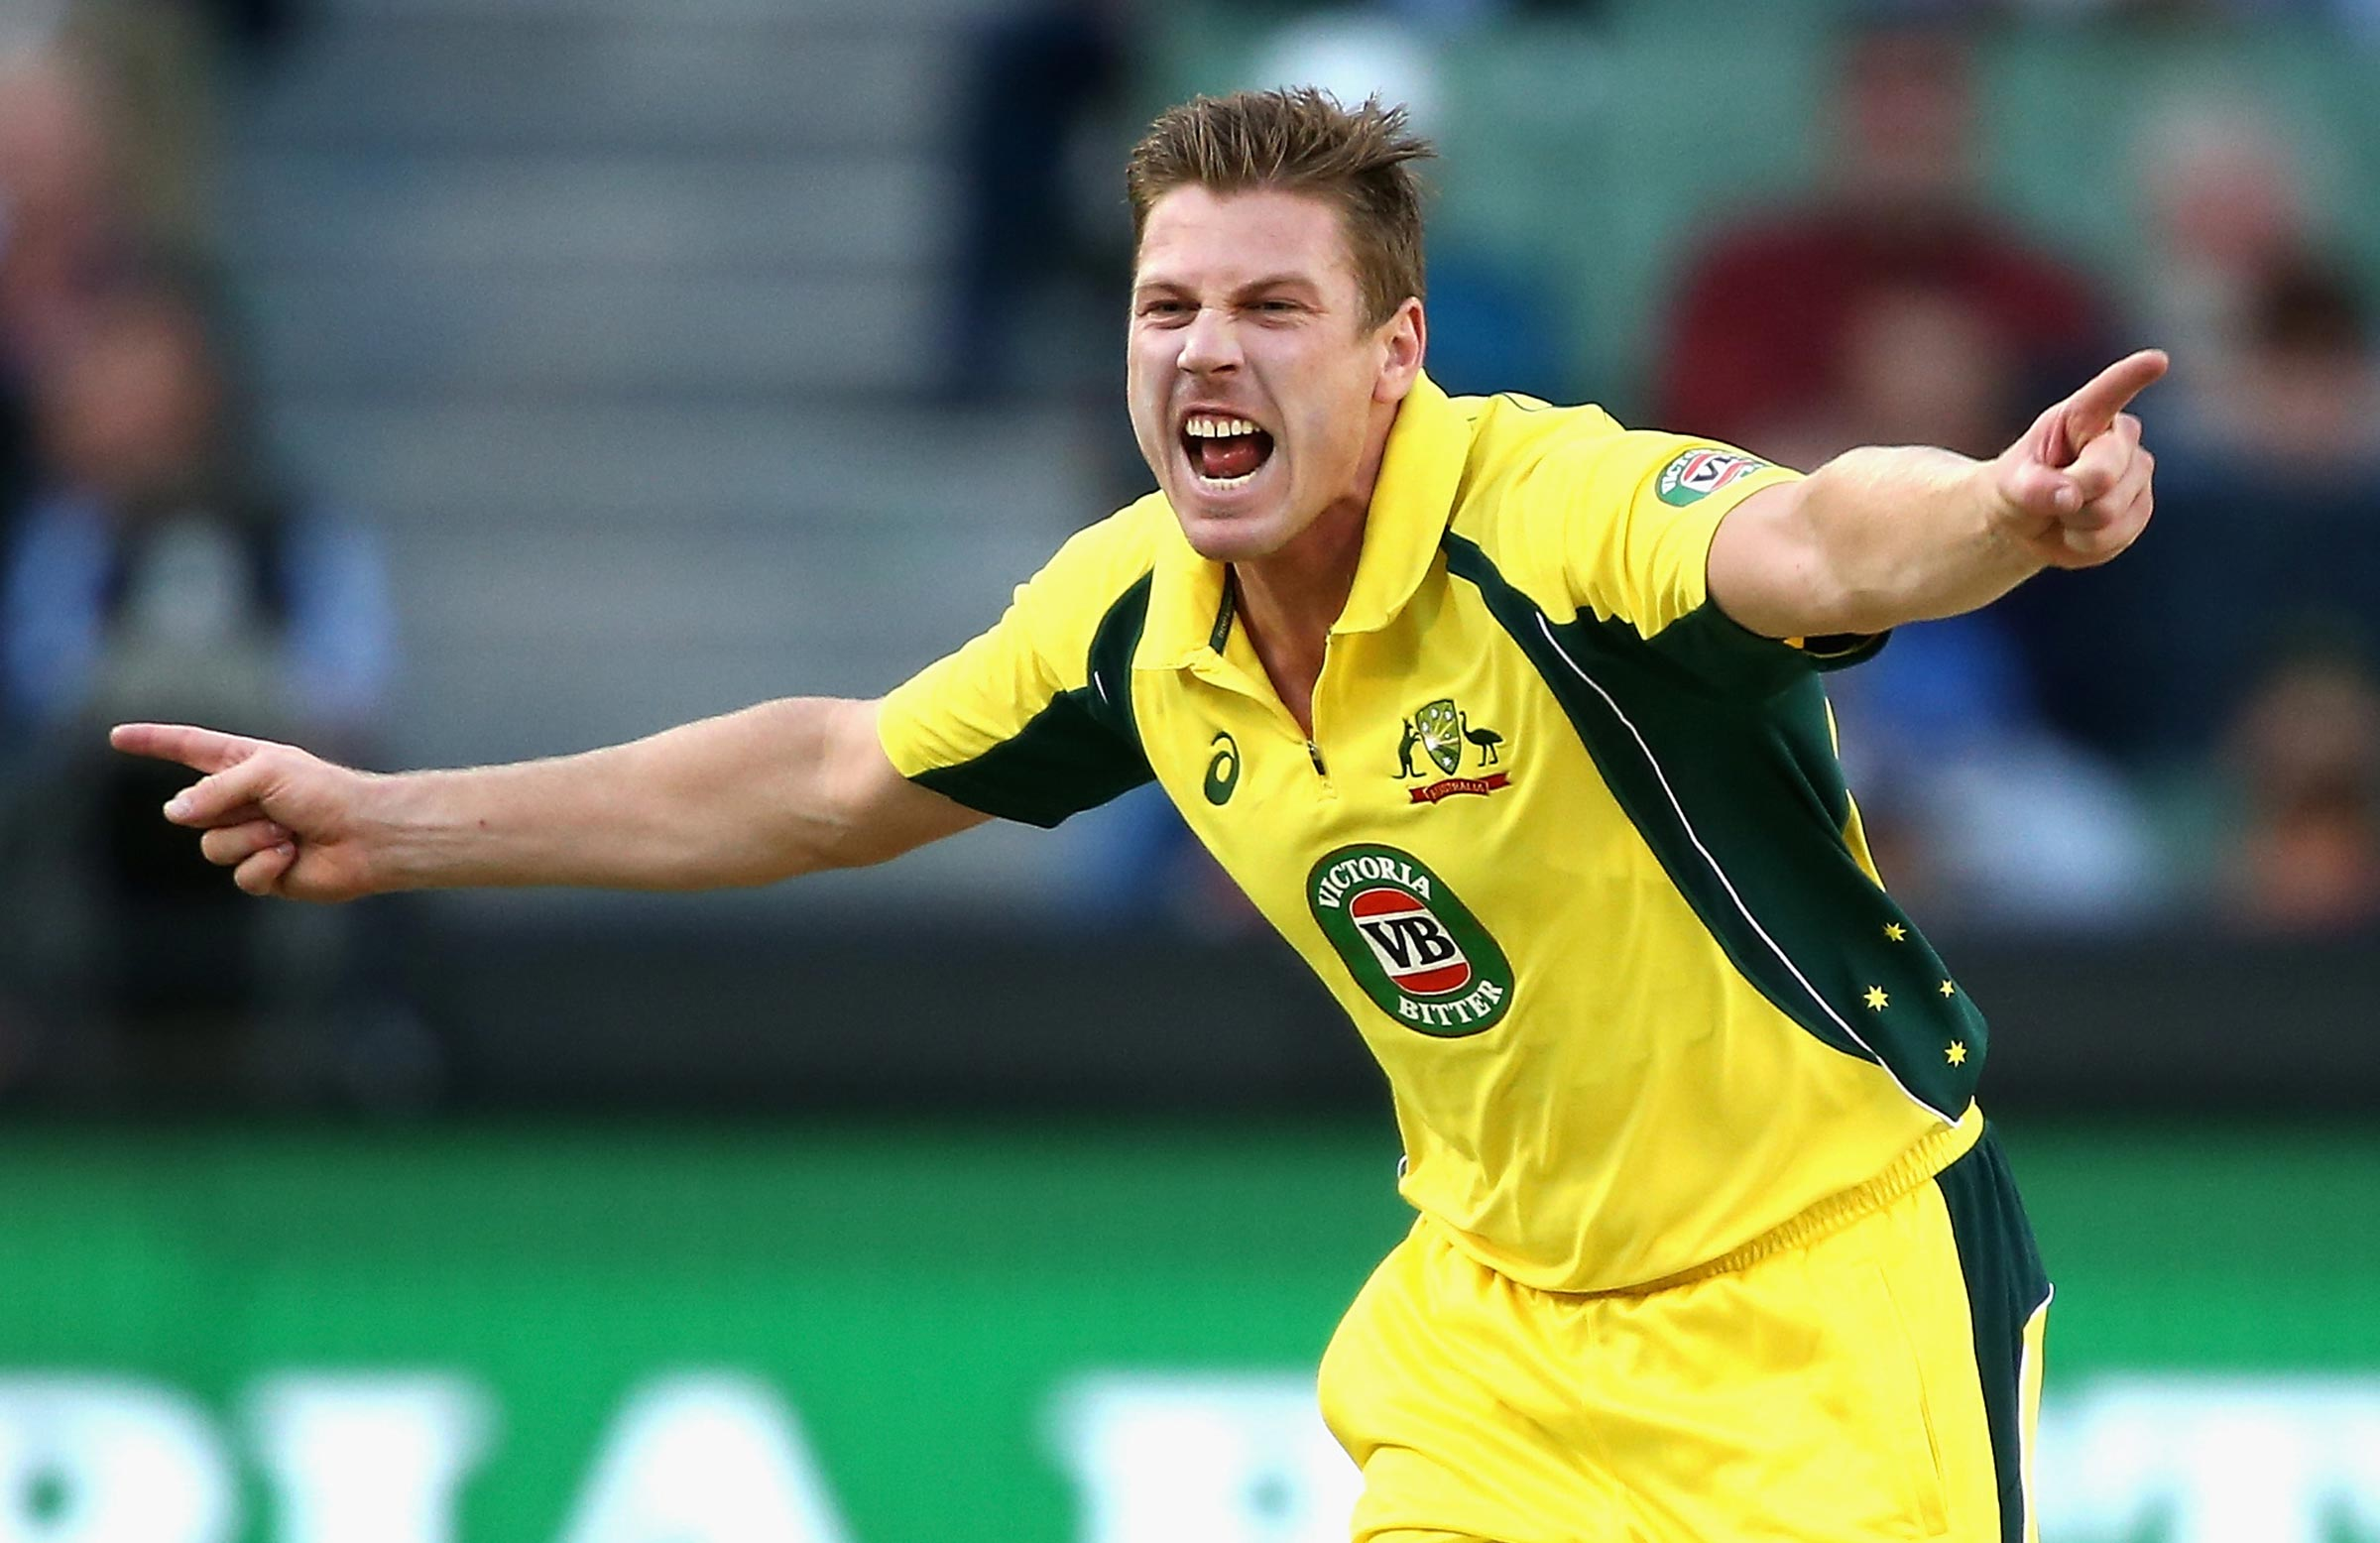 Faulkner, Coulter-Nile recalled in Australia squad for India tour